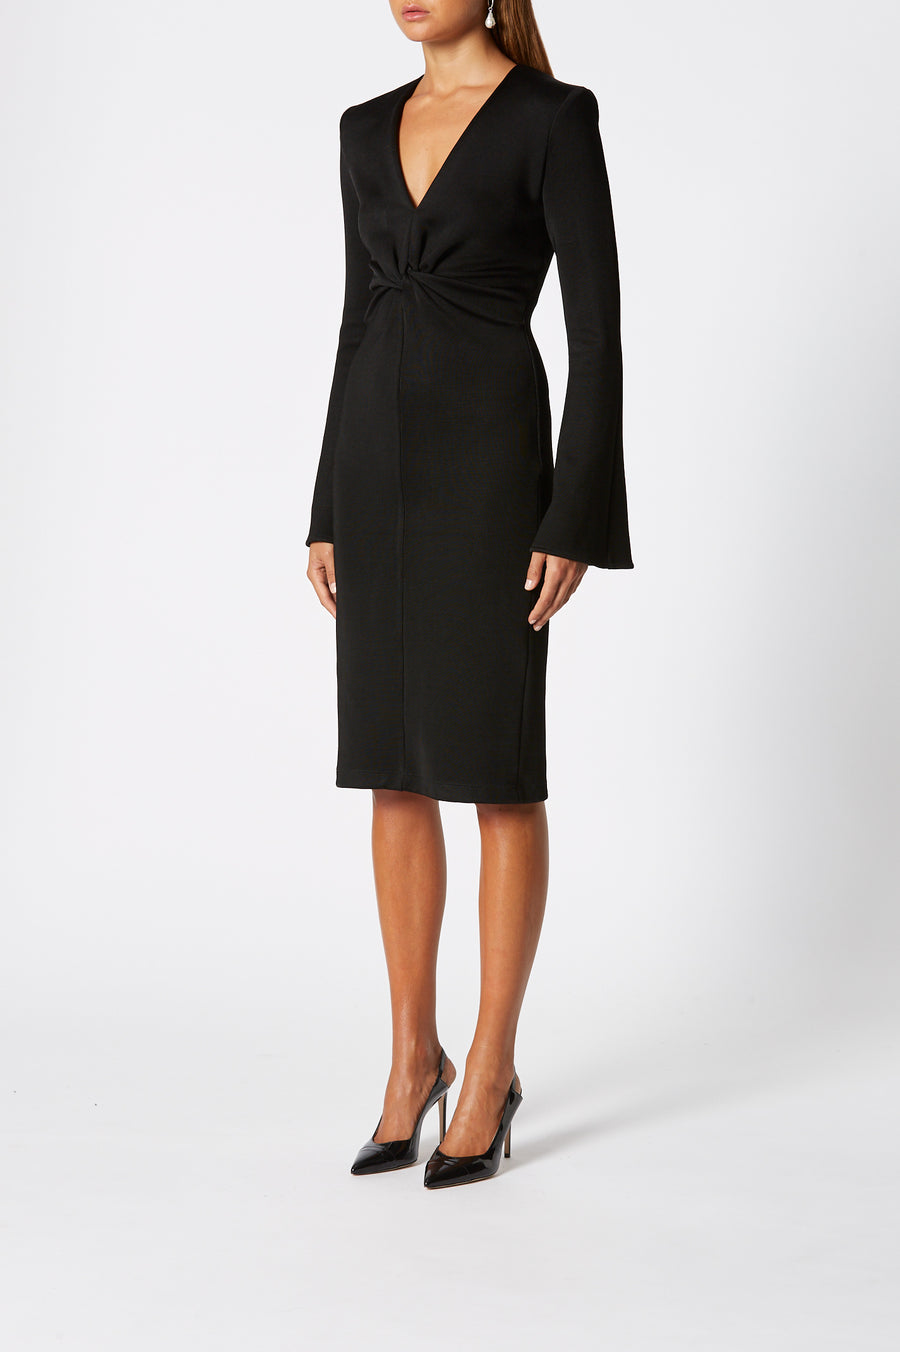 Long Sleeve Turban Twist Dress, structured v-neck style, cinches in at the waist, long sleeves, front twist detail, Color Black